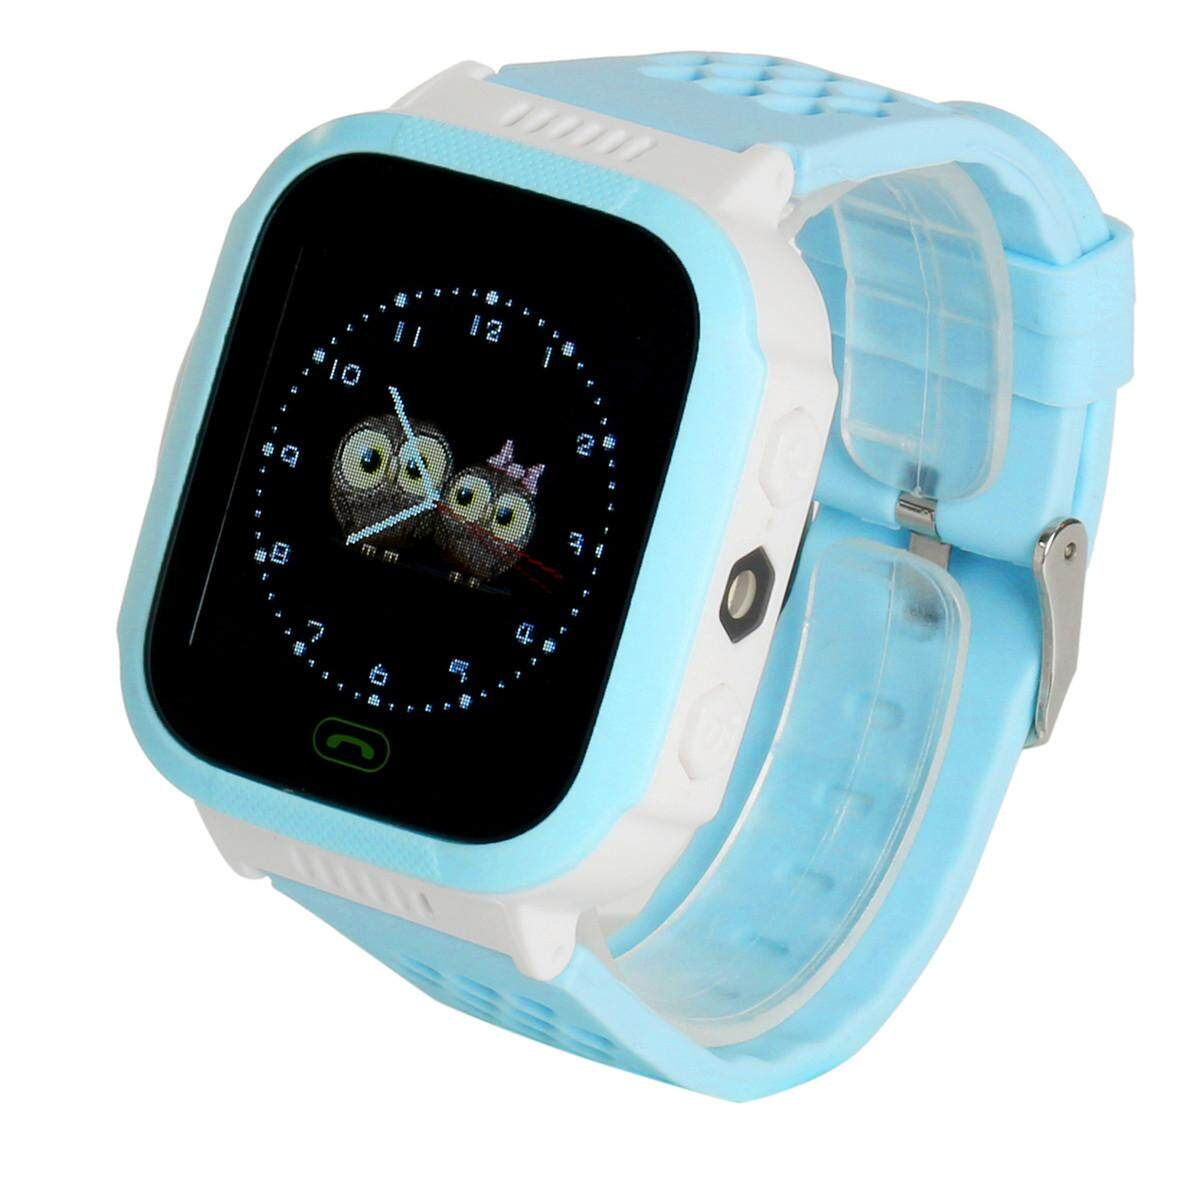 Beli Anti Lost Children Kids Gps Tracker Sos Call Smart Wrist Watch Phone For Phone Intl Oem Dengan Harga Terjangkau